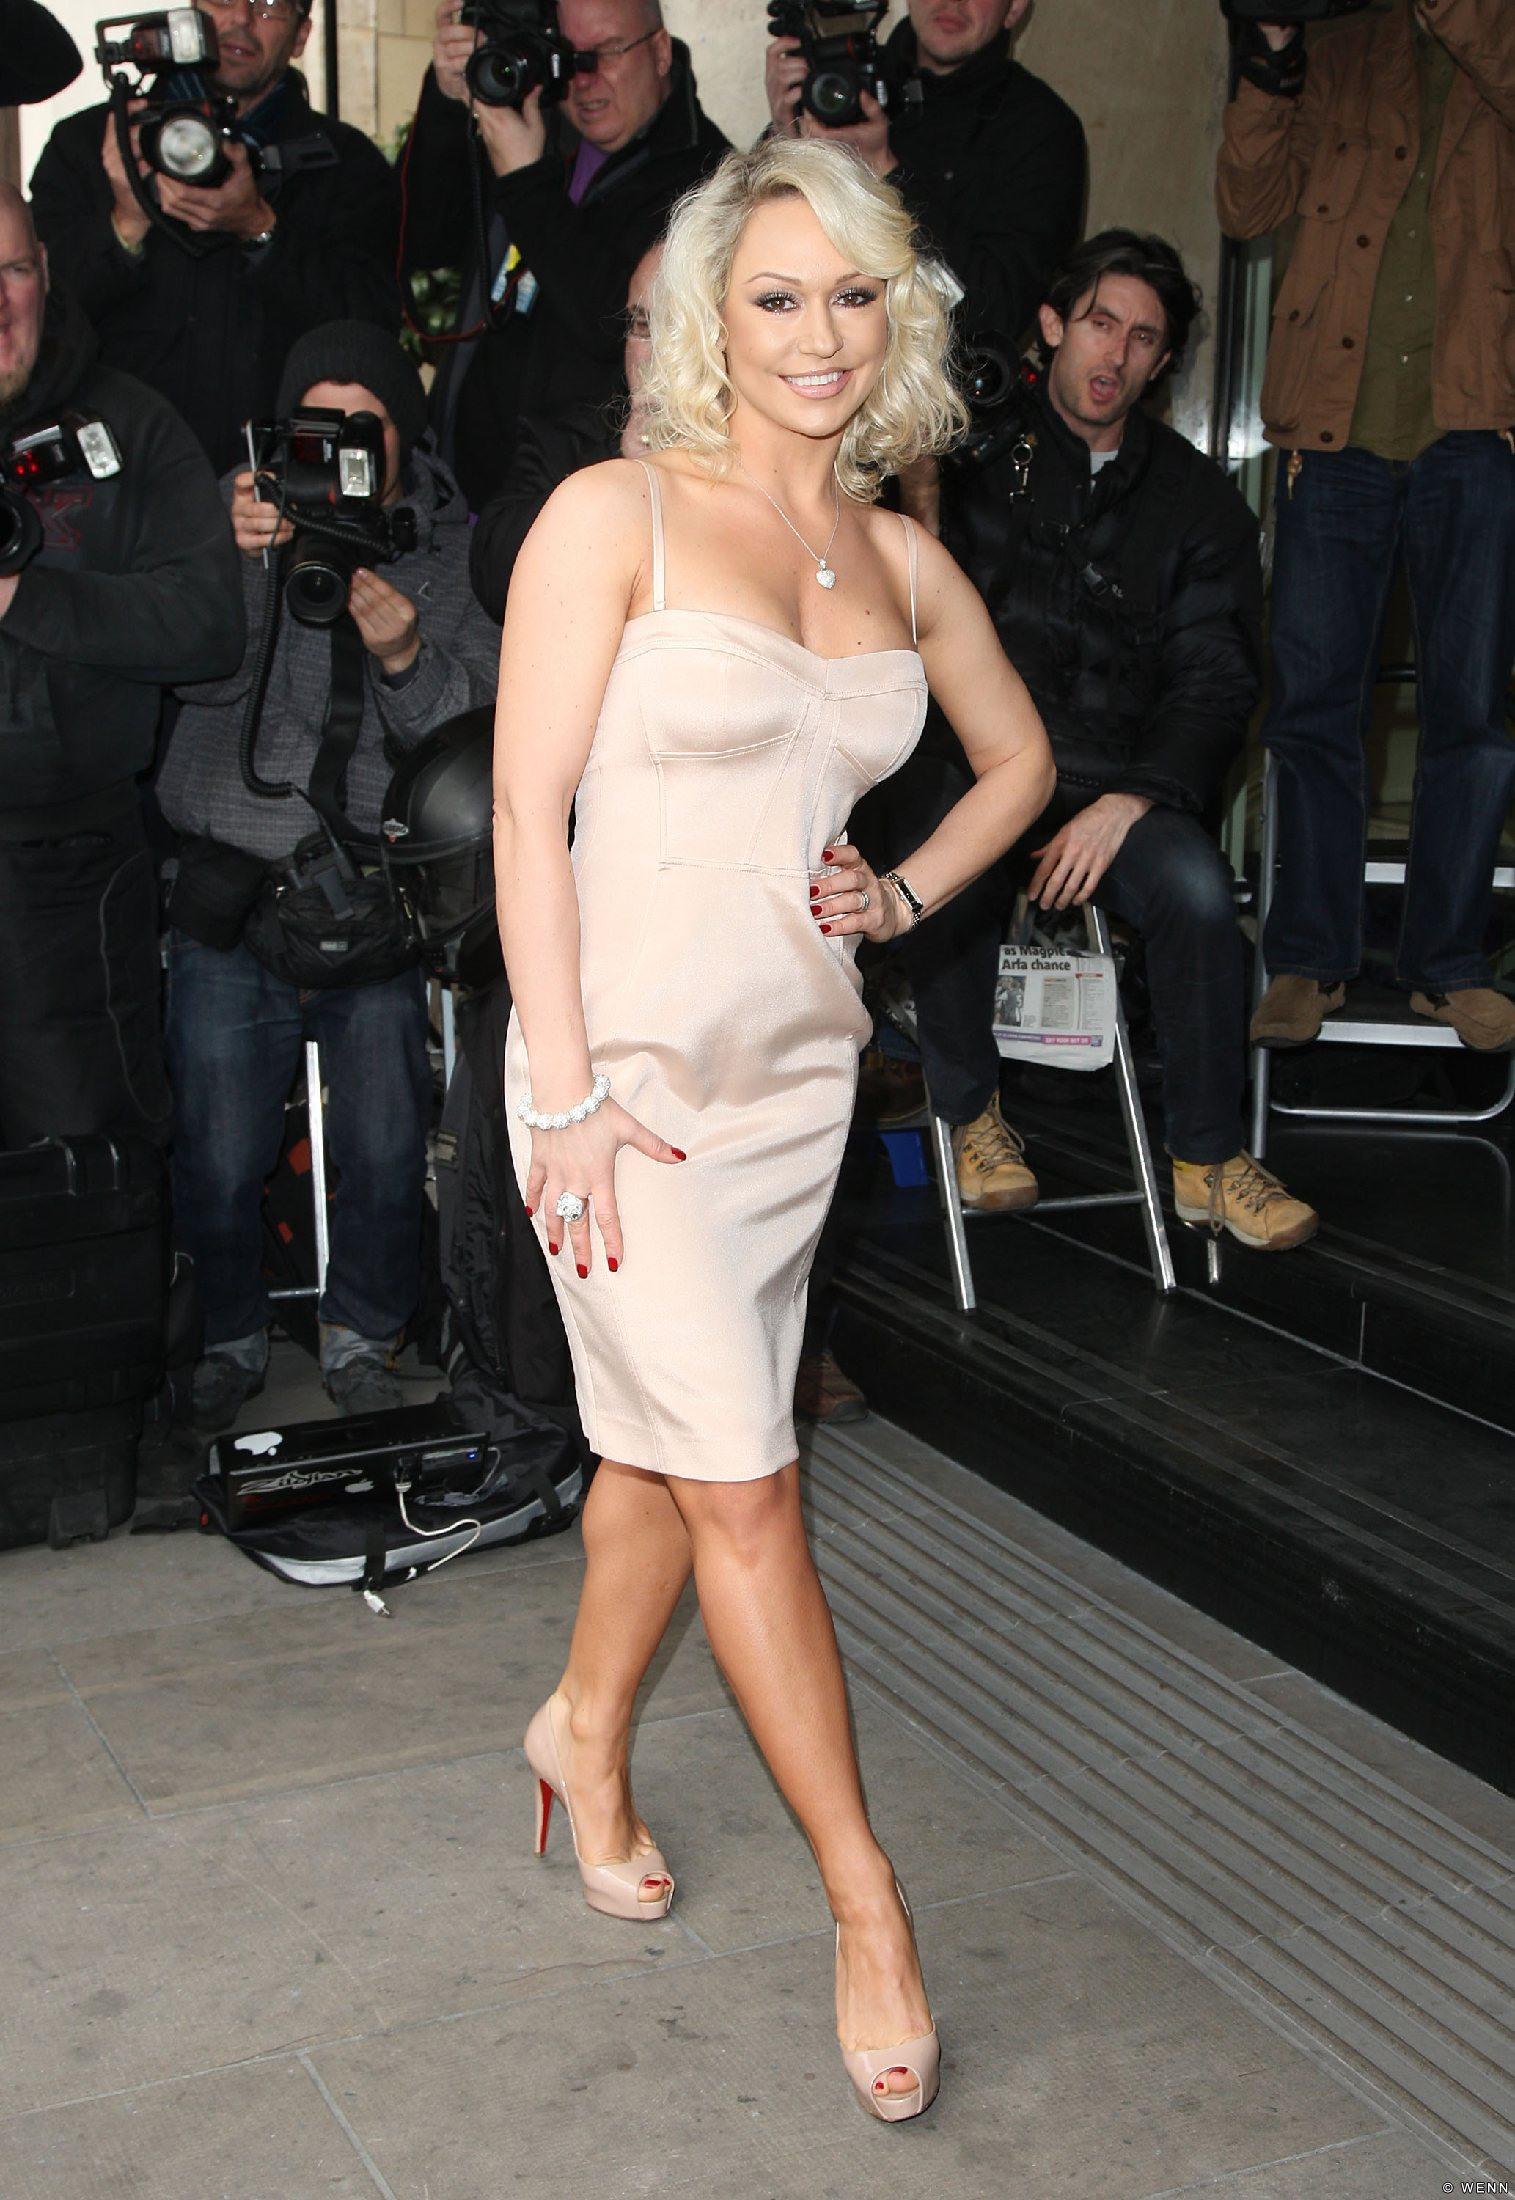 Spa seekers inteview Kristina Rihanoff